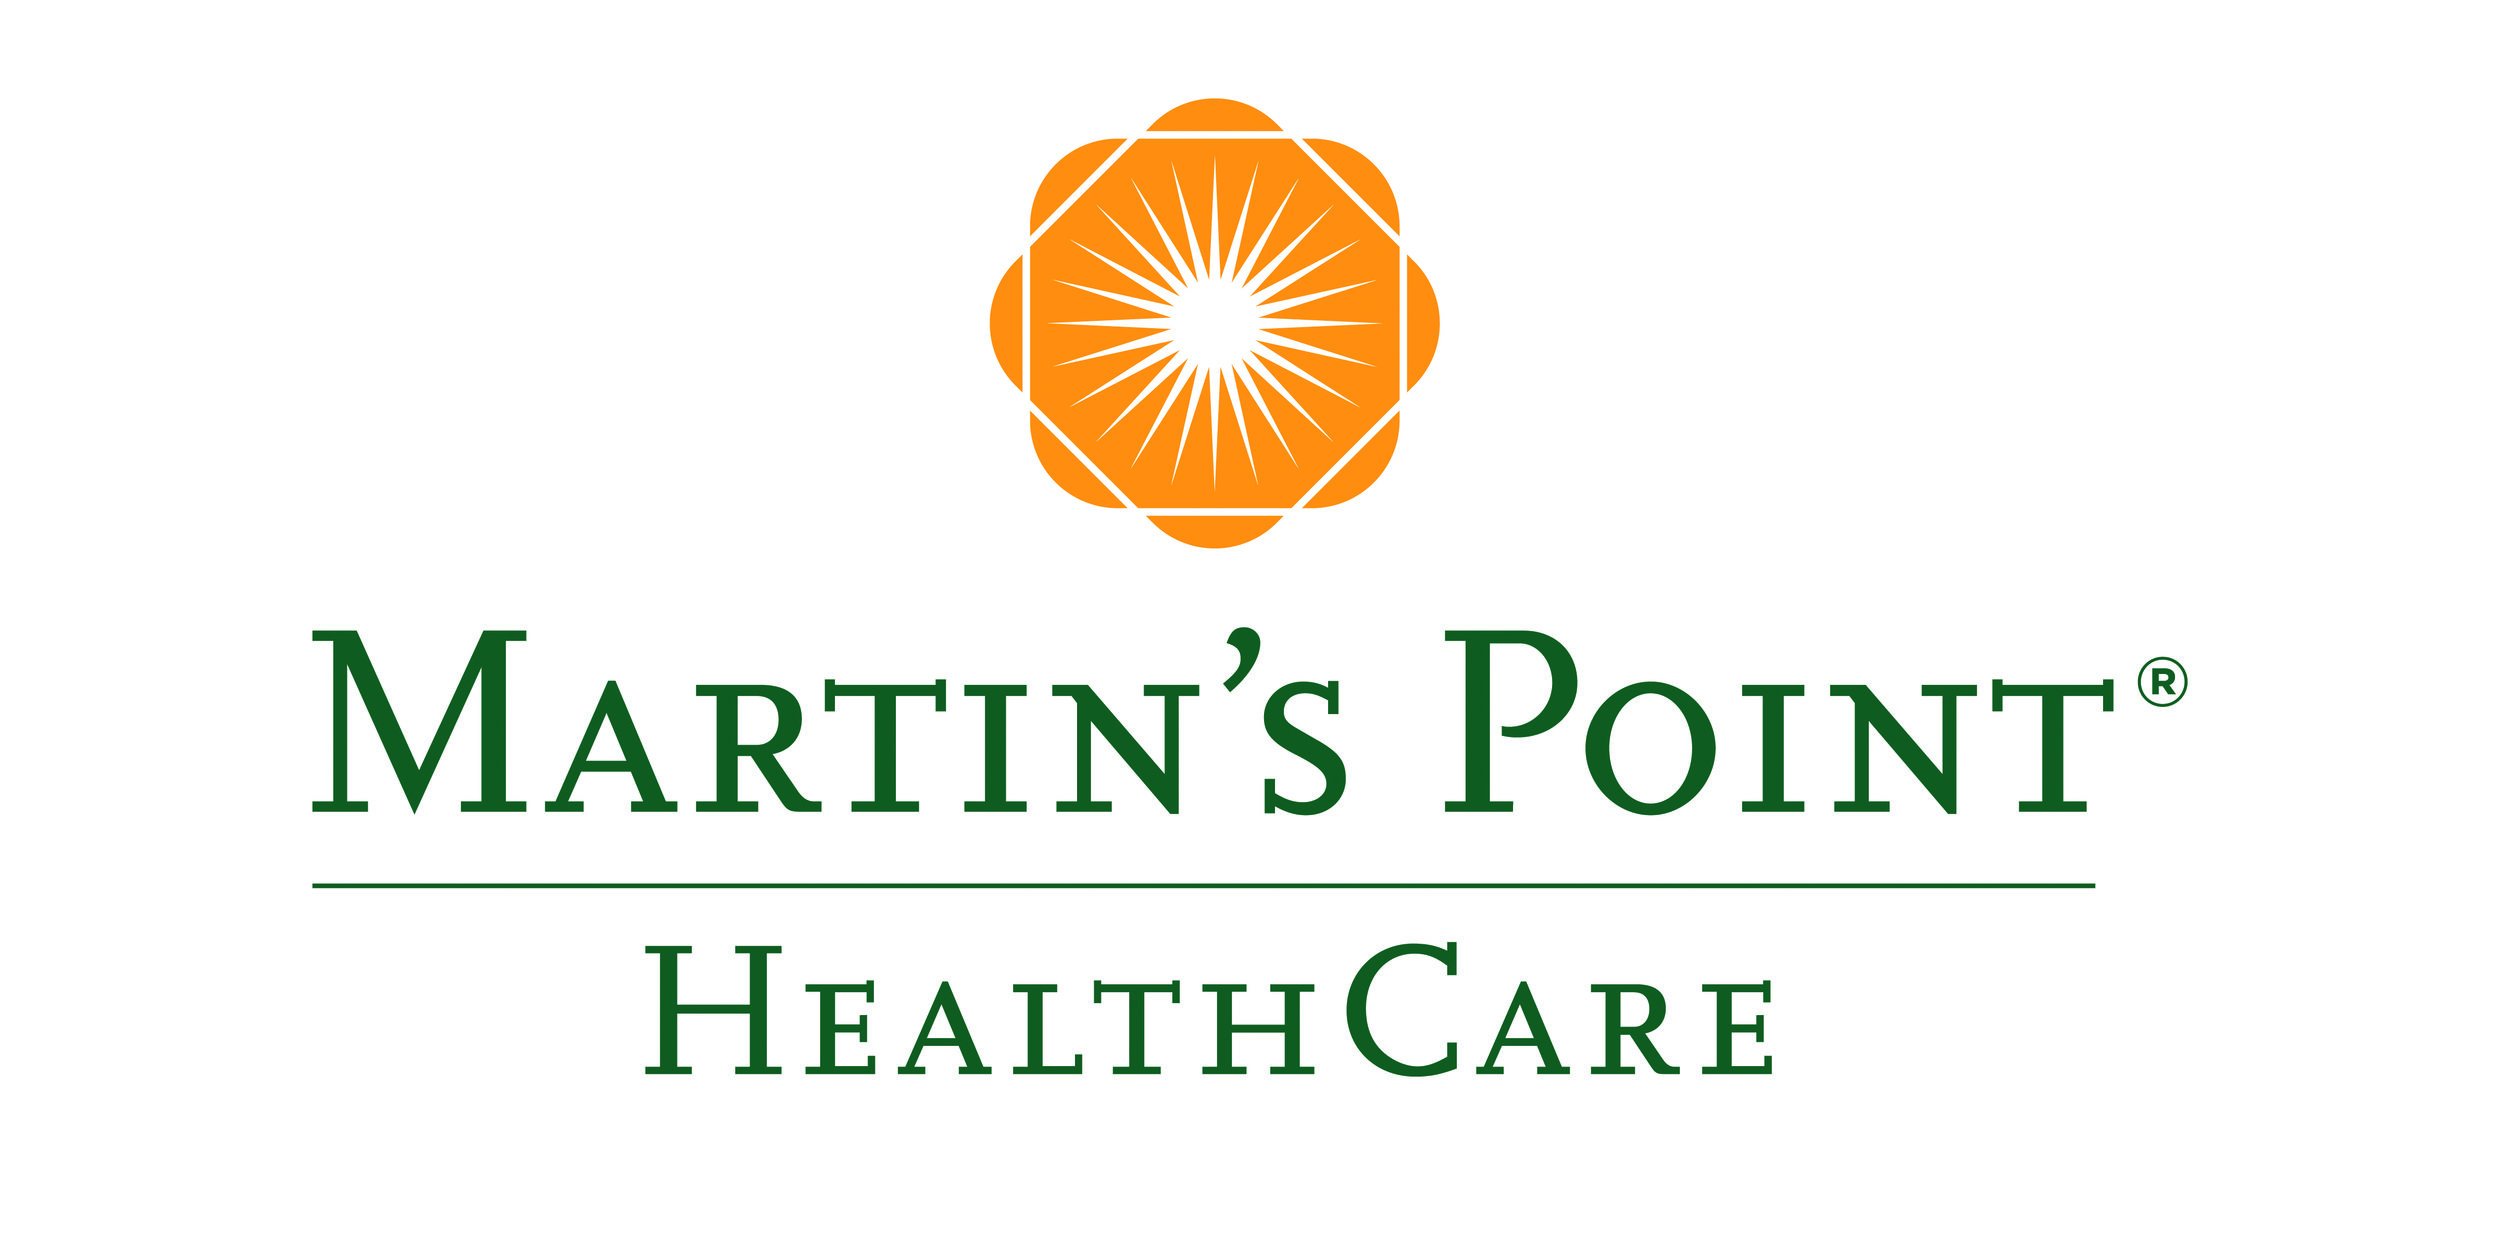 martins point logo.JPG